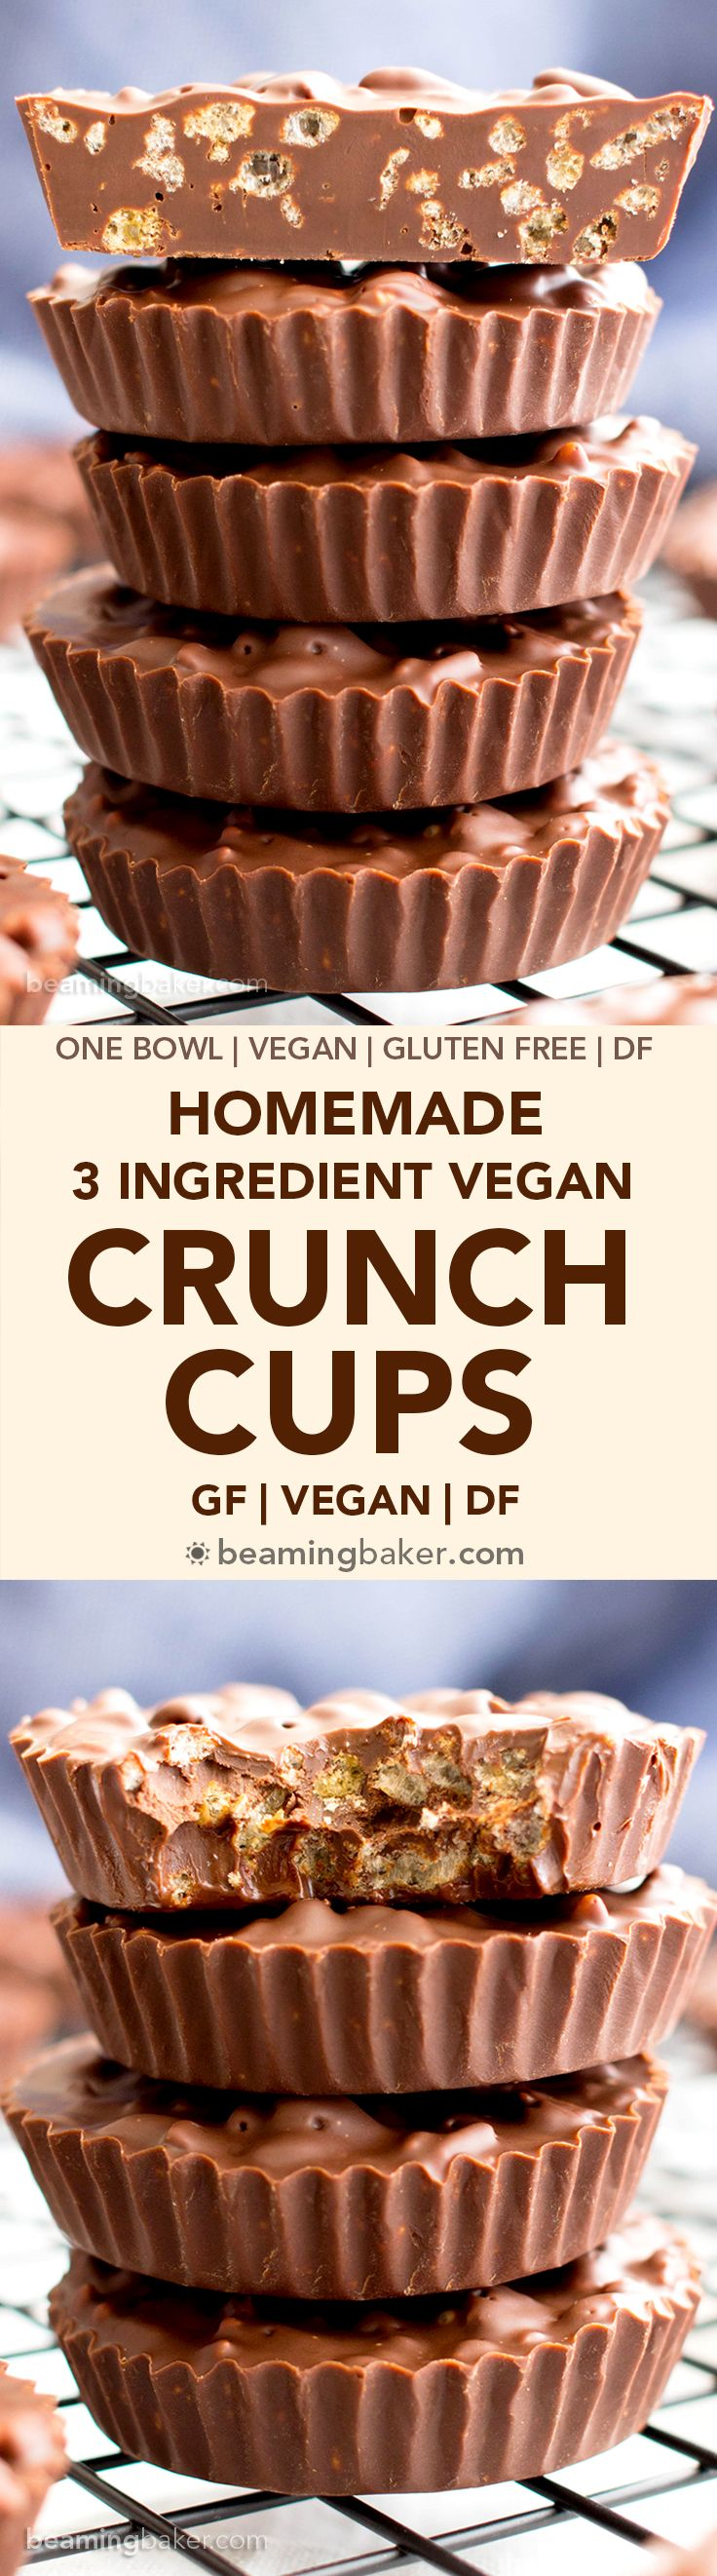 3 Ingredient Homemade Crunch Cups (V, GF): an easy, one bowl recipe for indulgently rich chocolate cups packed with crisp rice cereal. #Vegan #GlutenFree #OneBowl | http://BeamingBaker.com